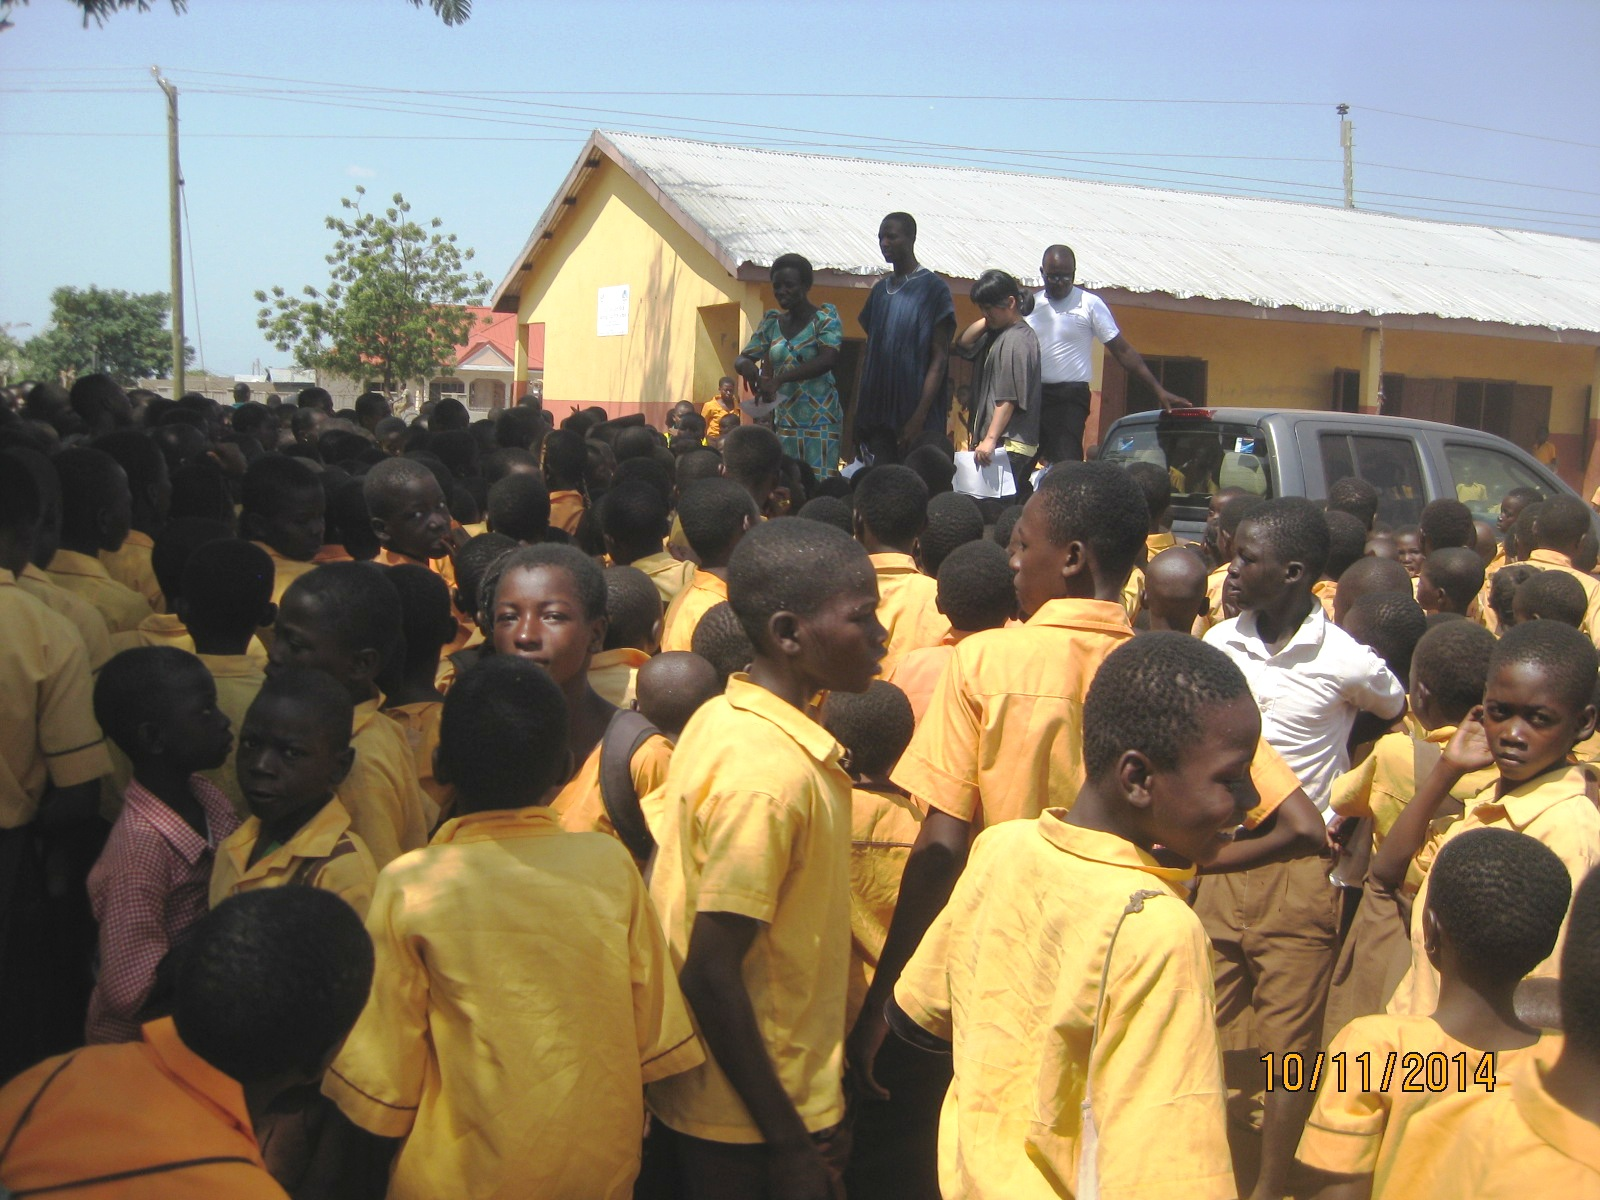 Mr Raphael McClare Asomey, Projects Officer of Savana Signatures with some personnel from the Ministry of Education and the Ghana Health Service educating the children on the Ebola disease at Savelugu